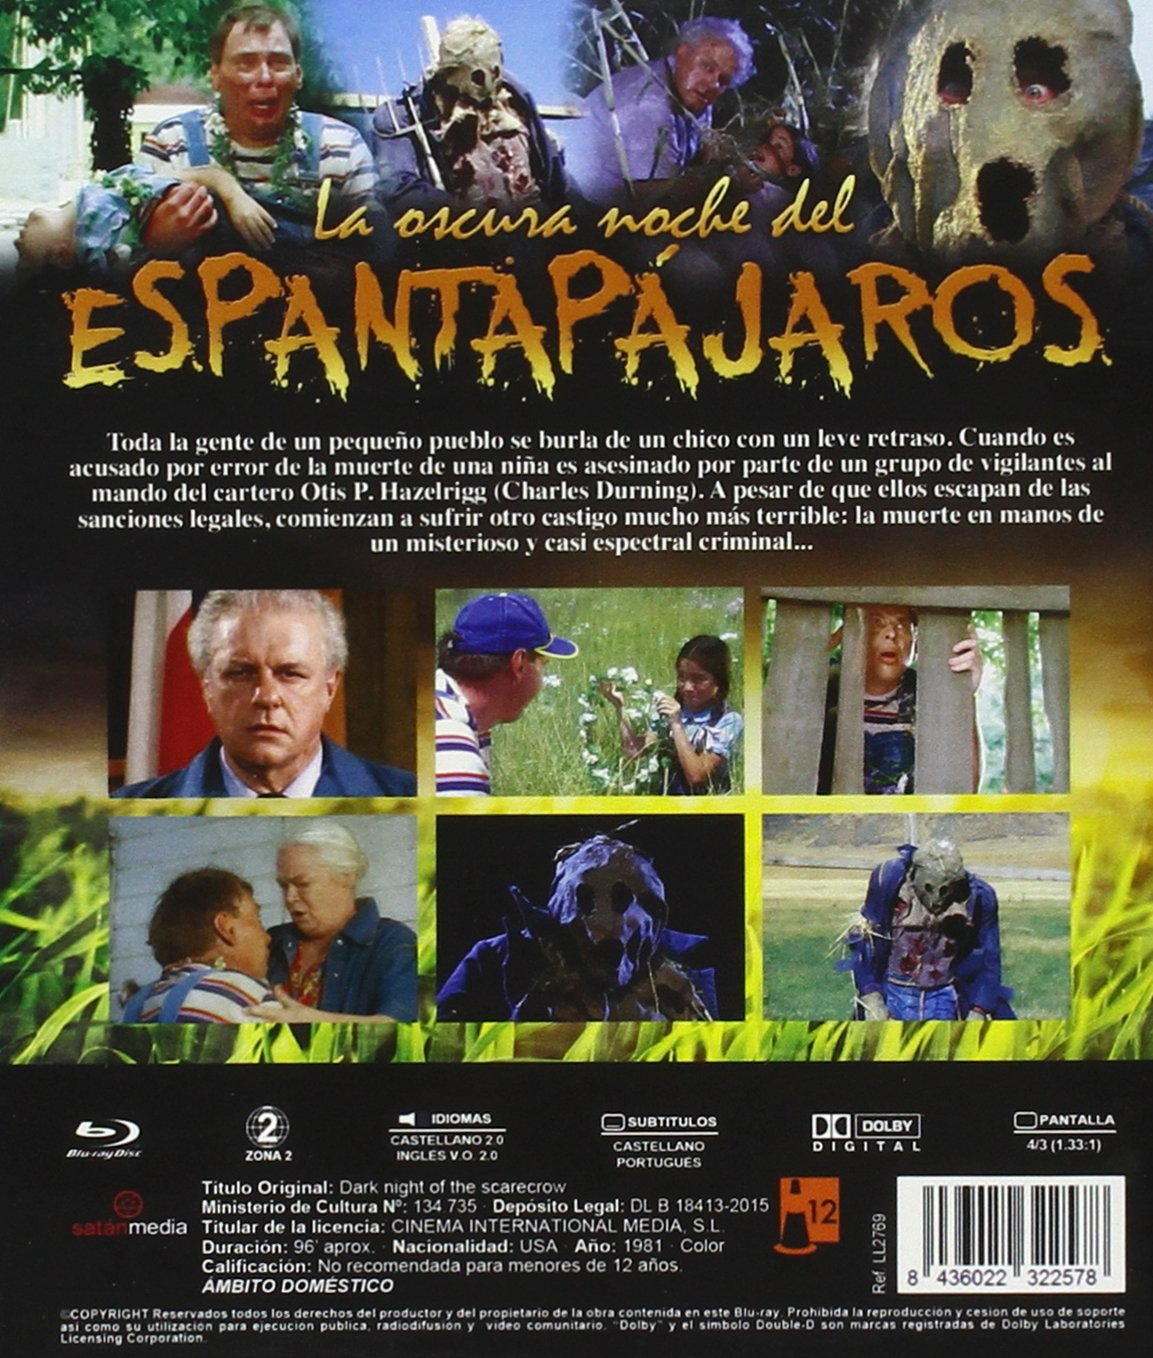 Amazon.com: Dark Night of the Scarecrow (Region B) [ Non-usa Format, Import - Spain ] (Spanish and German Audio): Movies & TV